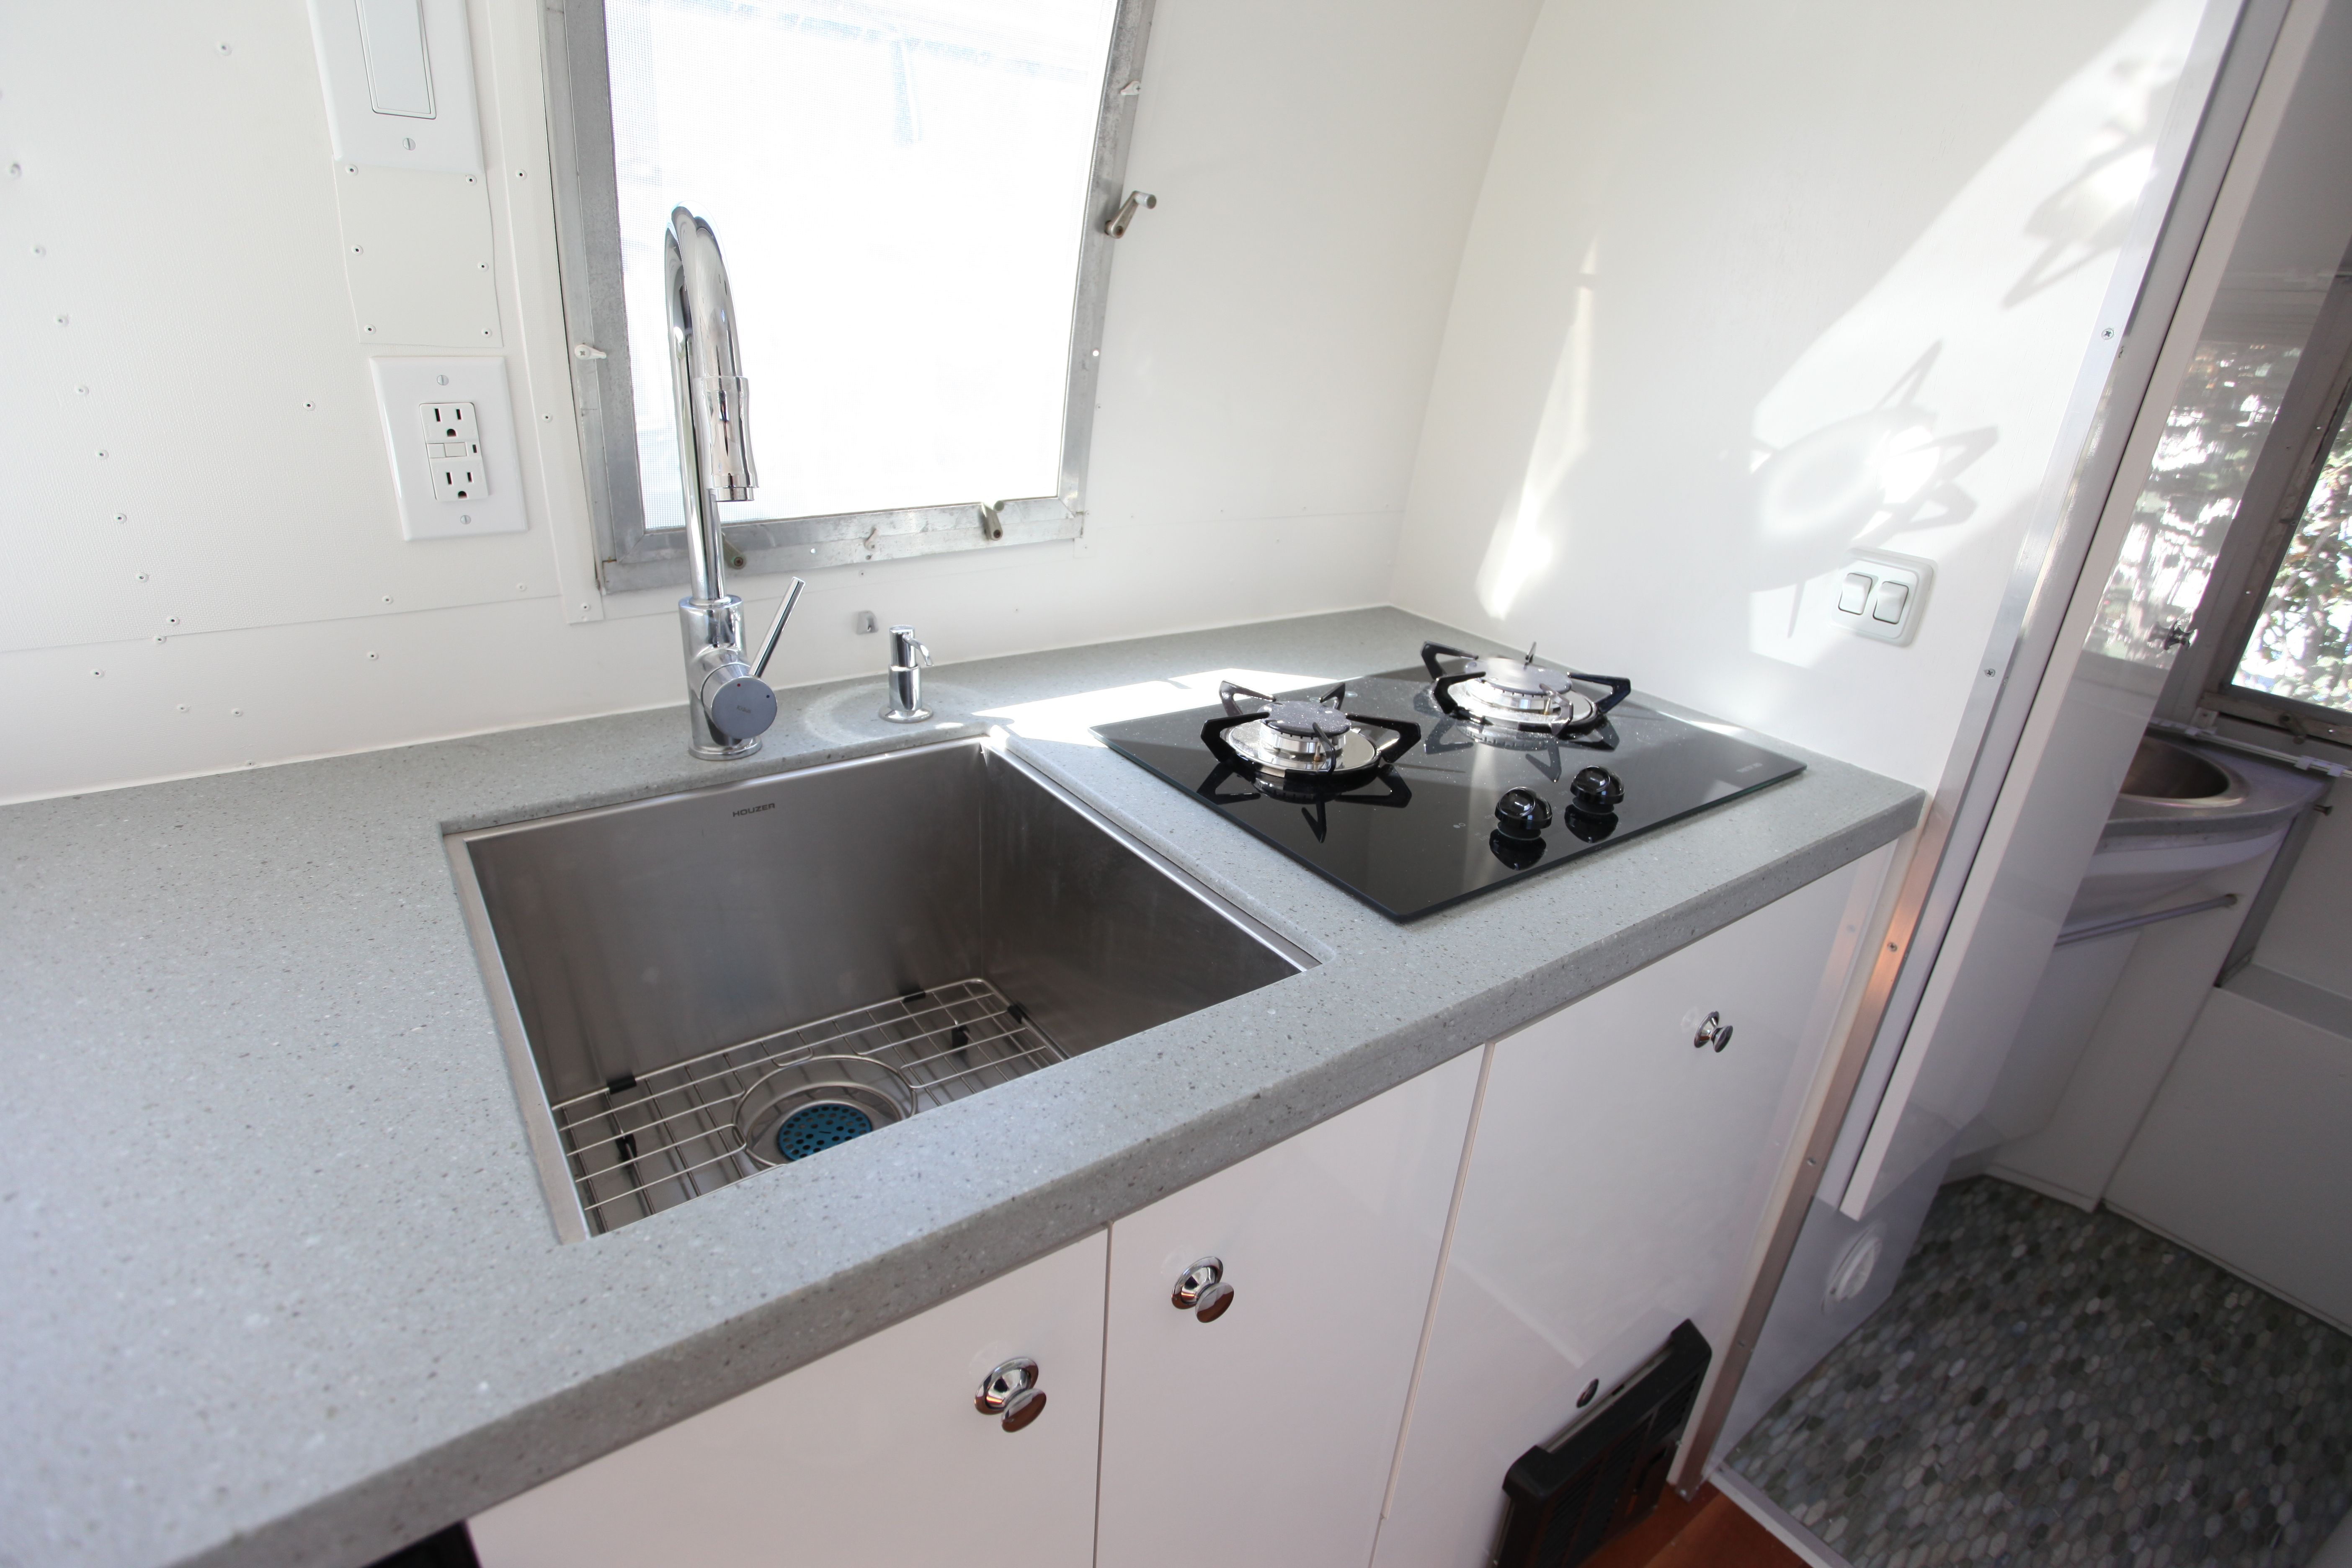 Light Grey Corian Countertops, A Stainless Steel Sink And Faucet, Help Keep  The Clean